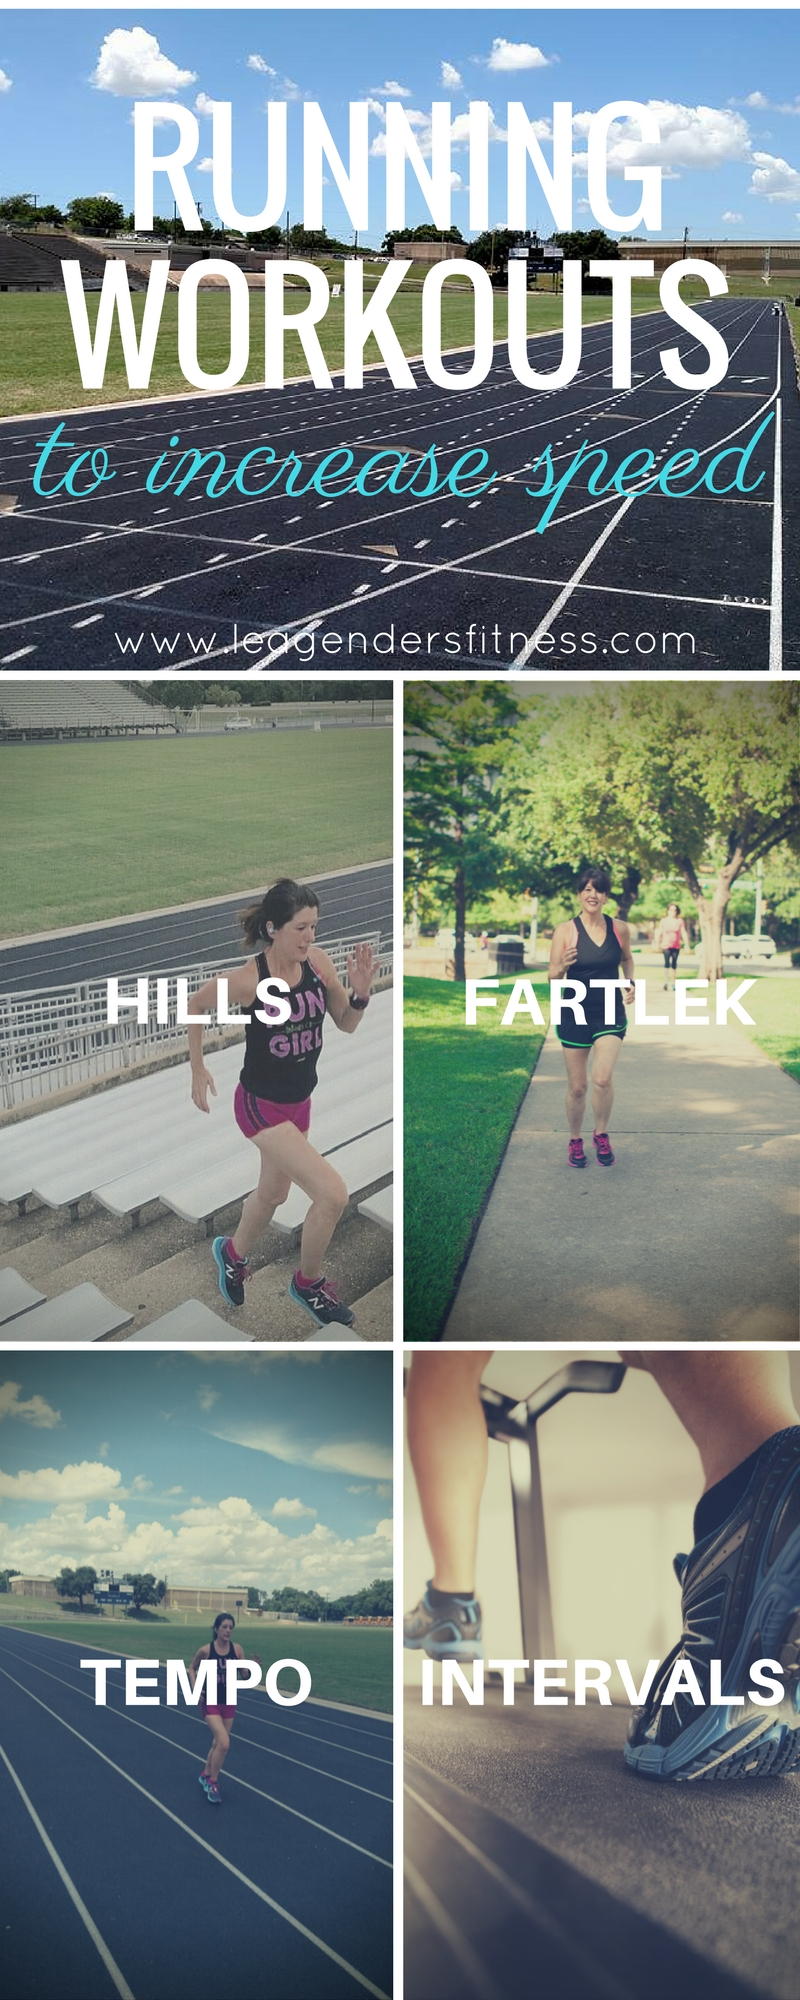 Types of Running Workouts to Increase Speed